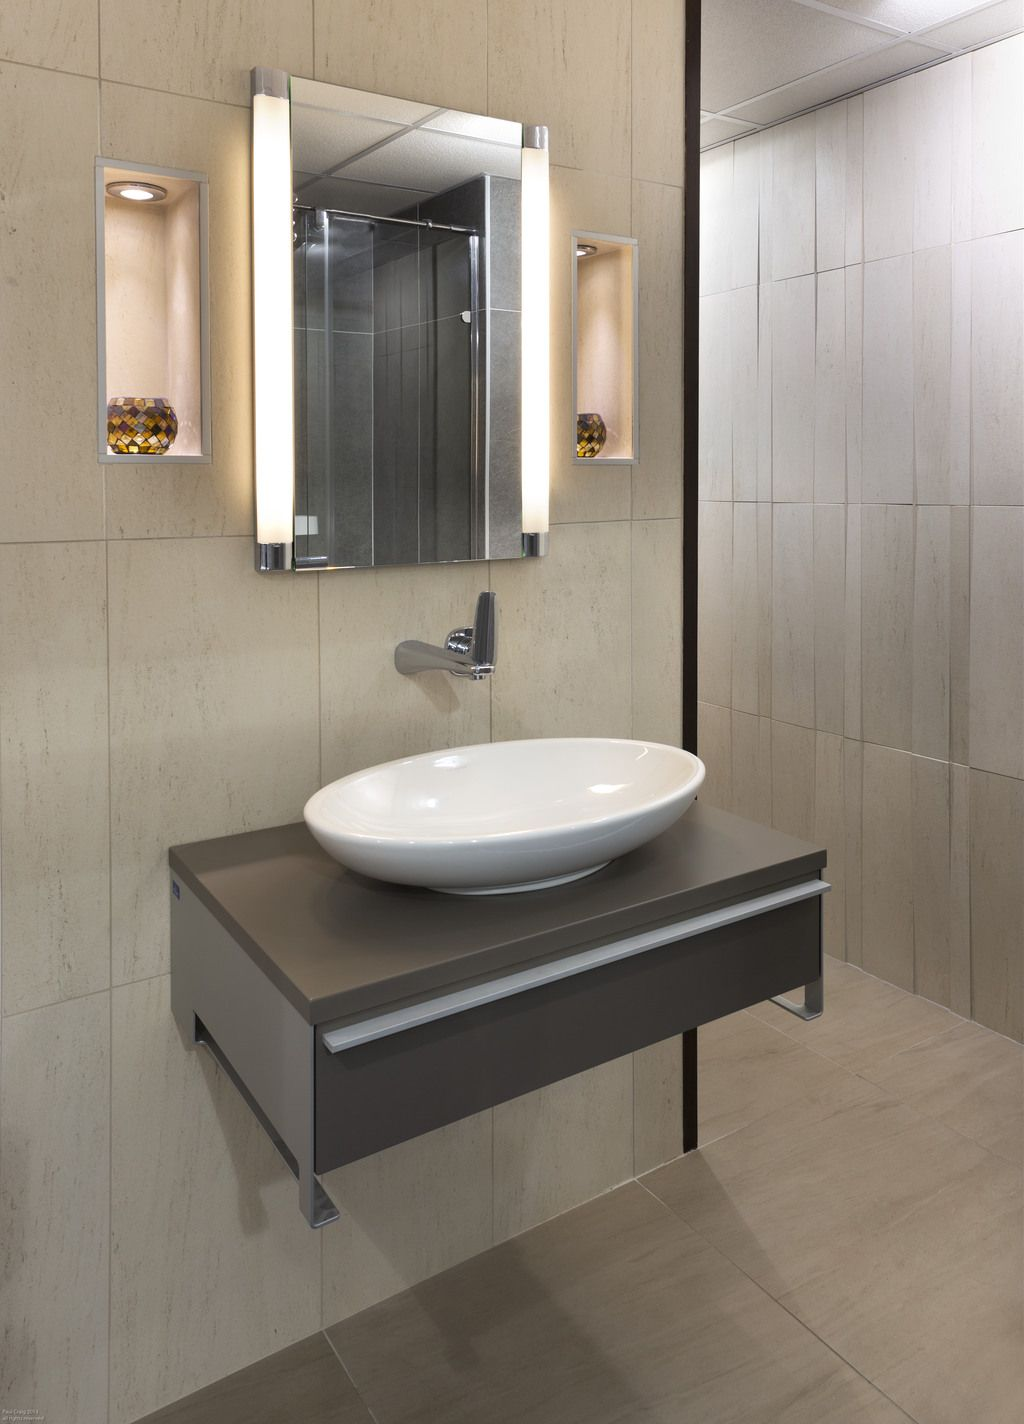 Inspirational Villeroy u Boch display featuring a vanity unit from the Shape range together with an oval